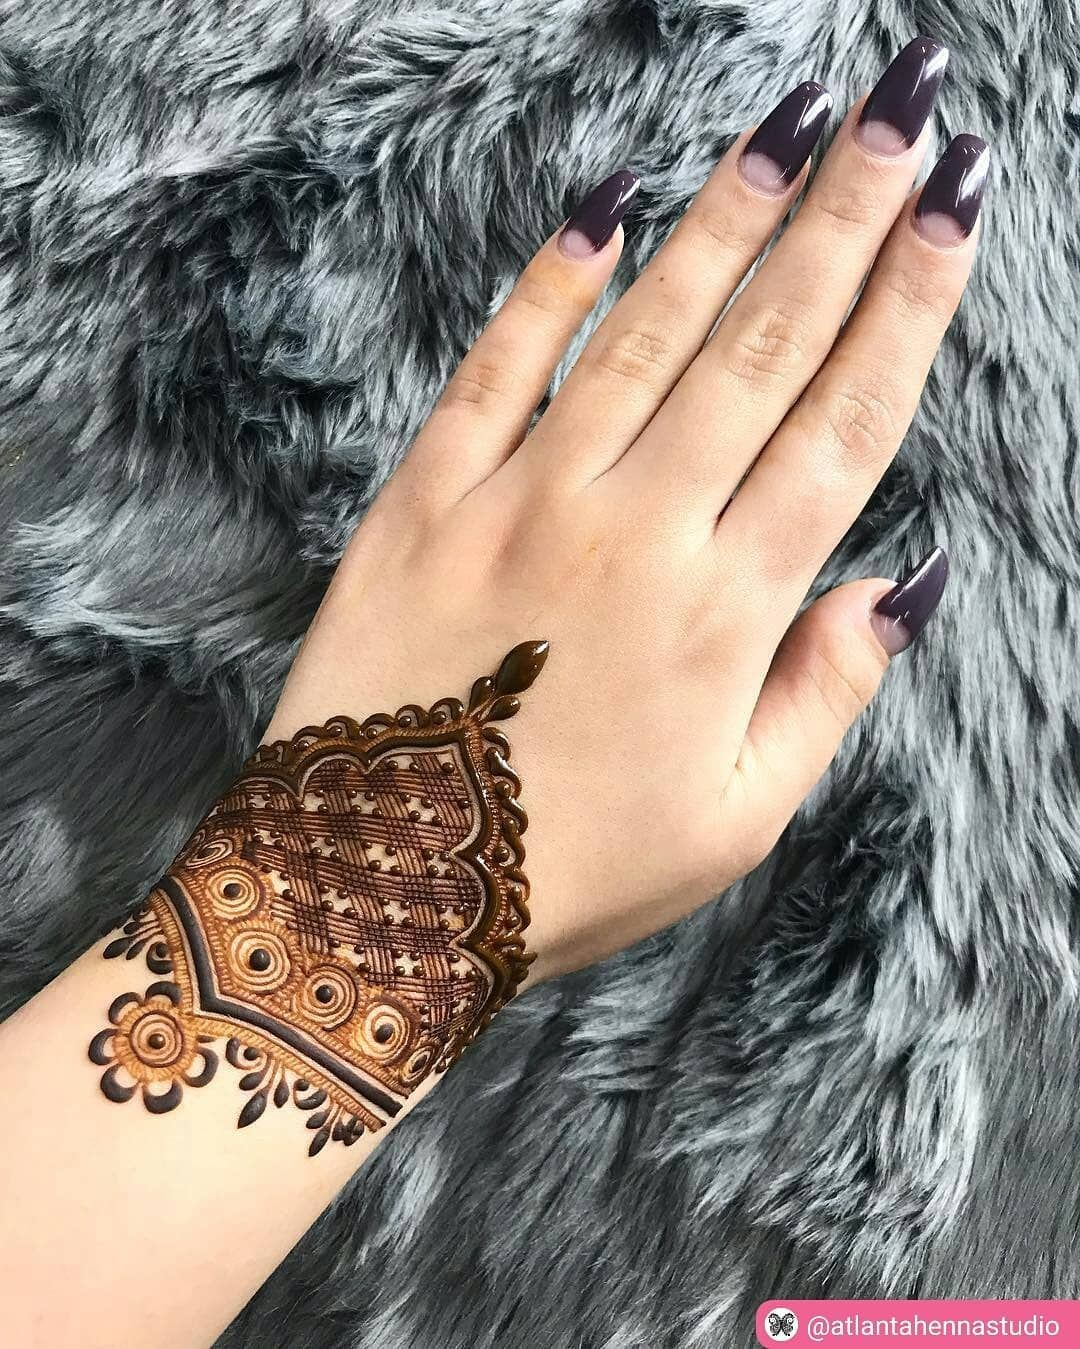 Mehendi Designs For Wrist Part 2 Mehndi Design: 40 Latest Mehndi Designs To Try In 2019